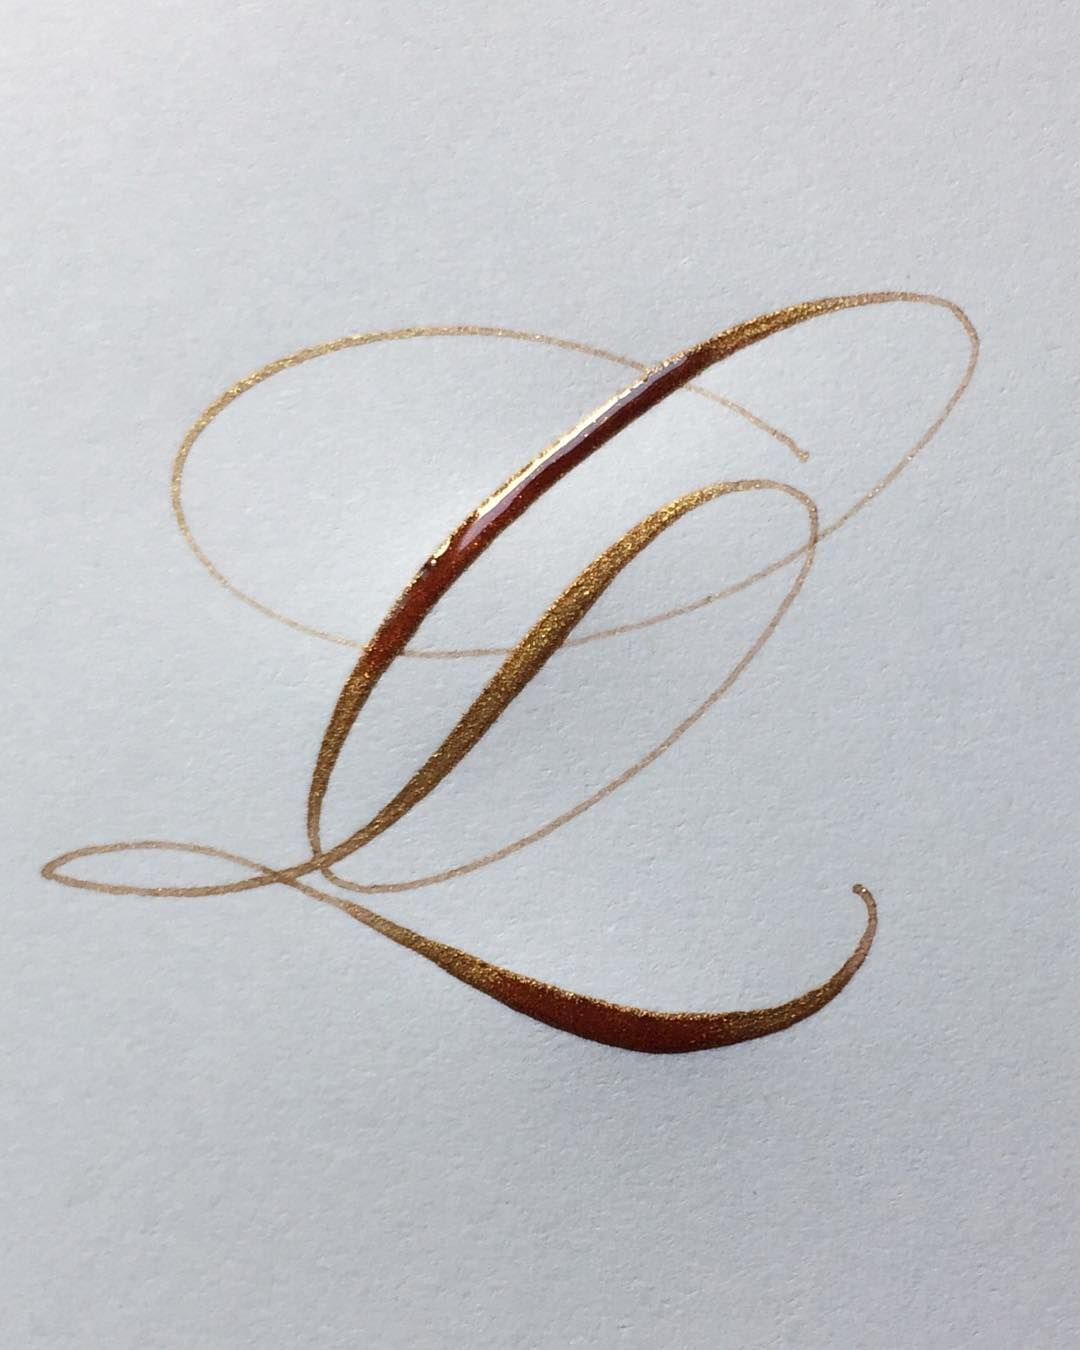 Letter 'Q' in copperplate copper Copperplate calligraphy